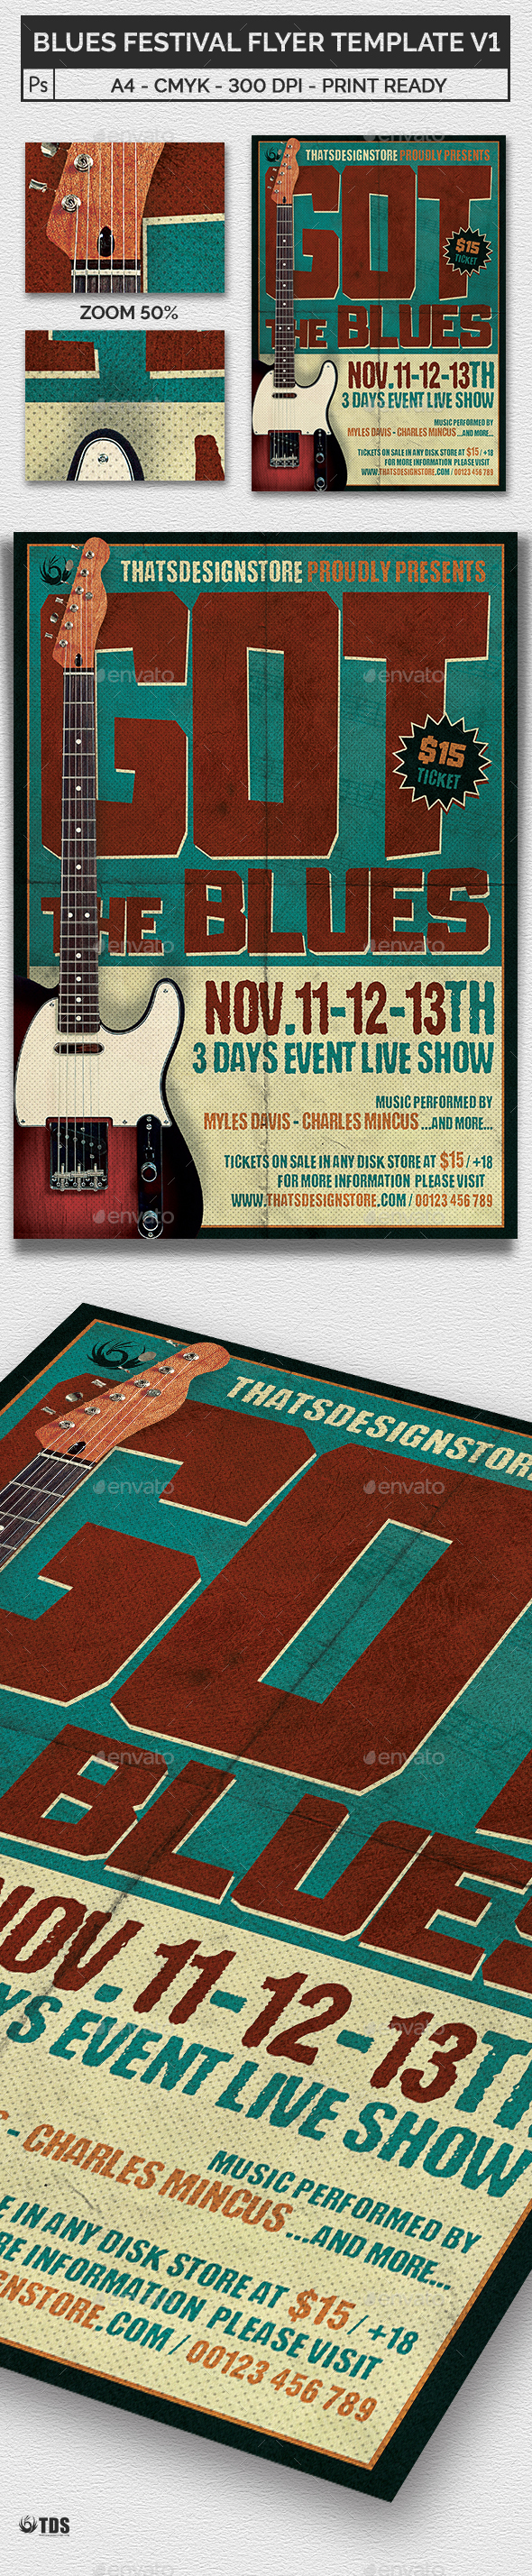 Blues Festival Flyer Template V1 - Concerts Events